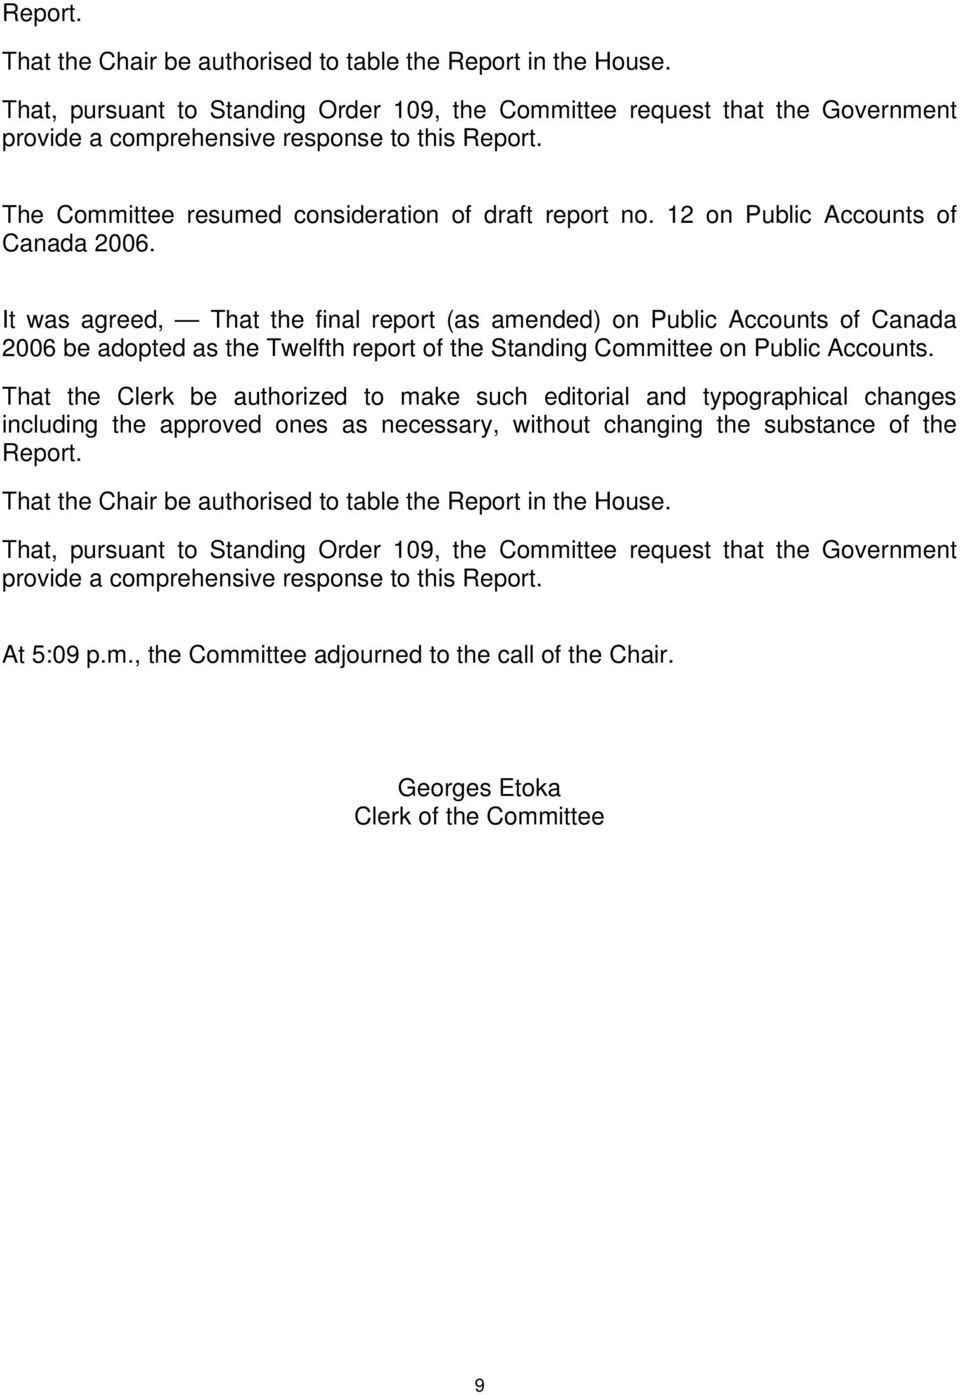 It was agreed, That the final report (as amended) on Public Accounts of Canada 2006 be adopted as the Twelfth report of the Standing Committee on Public Accounts.